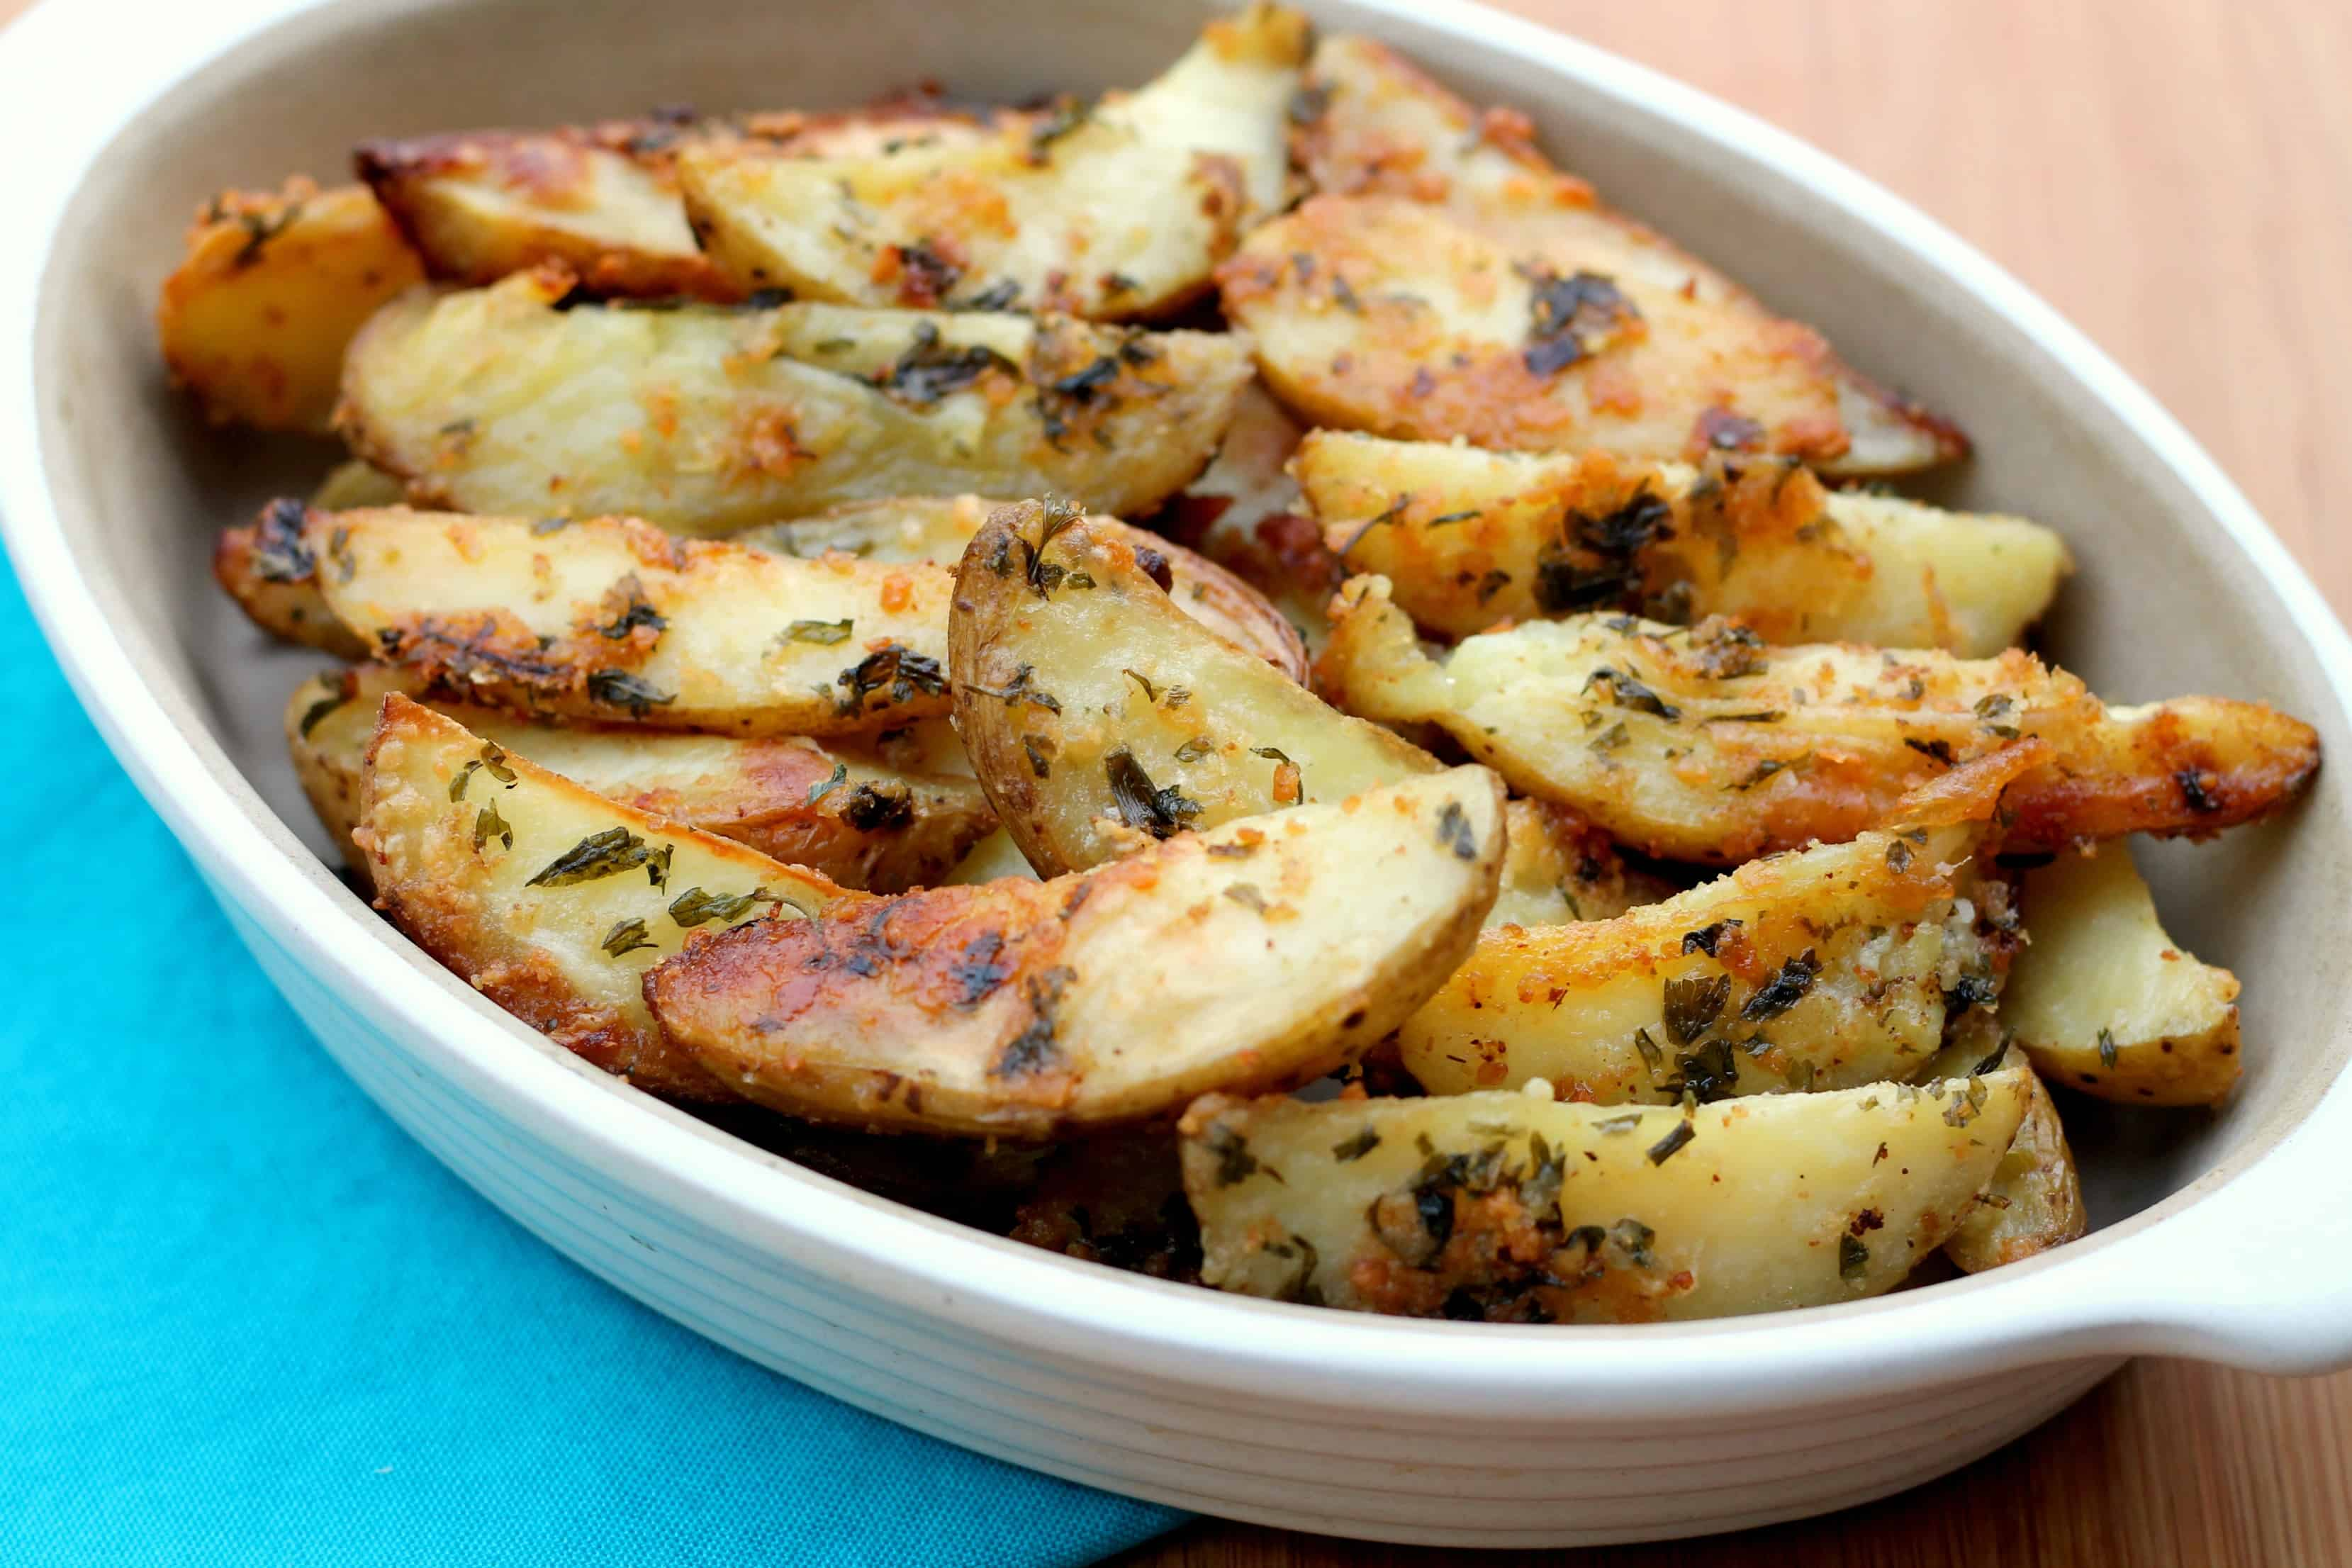 Parmesan Baked Potato Wedges with Parsley